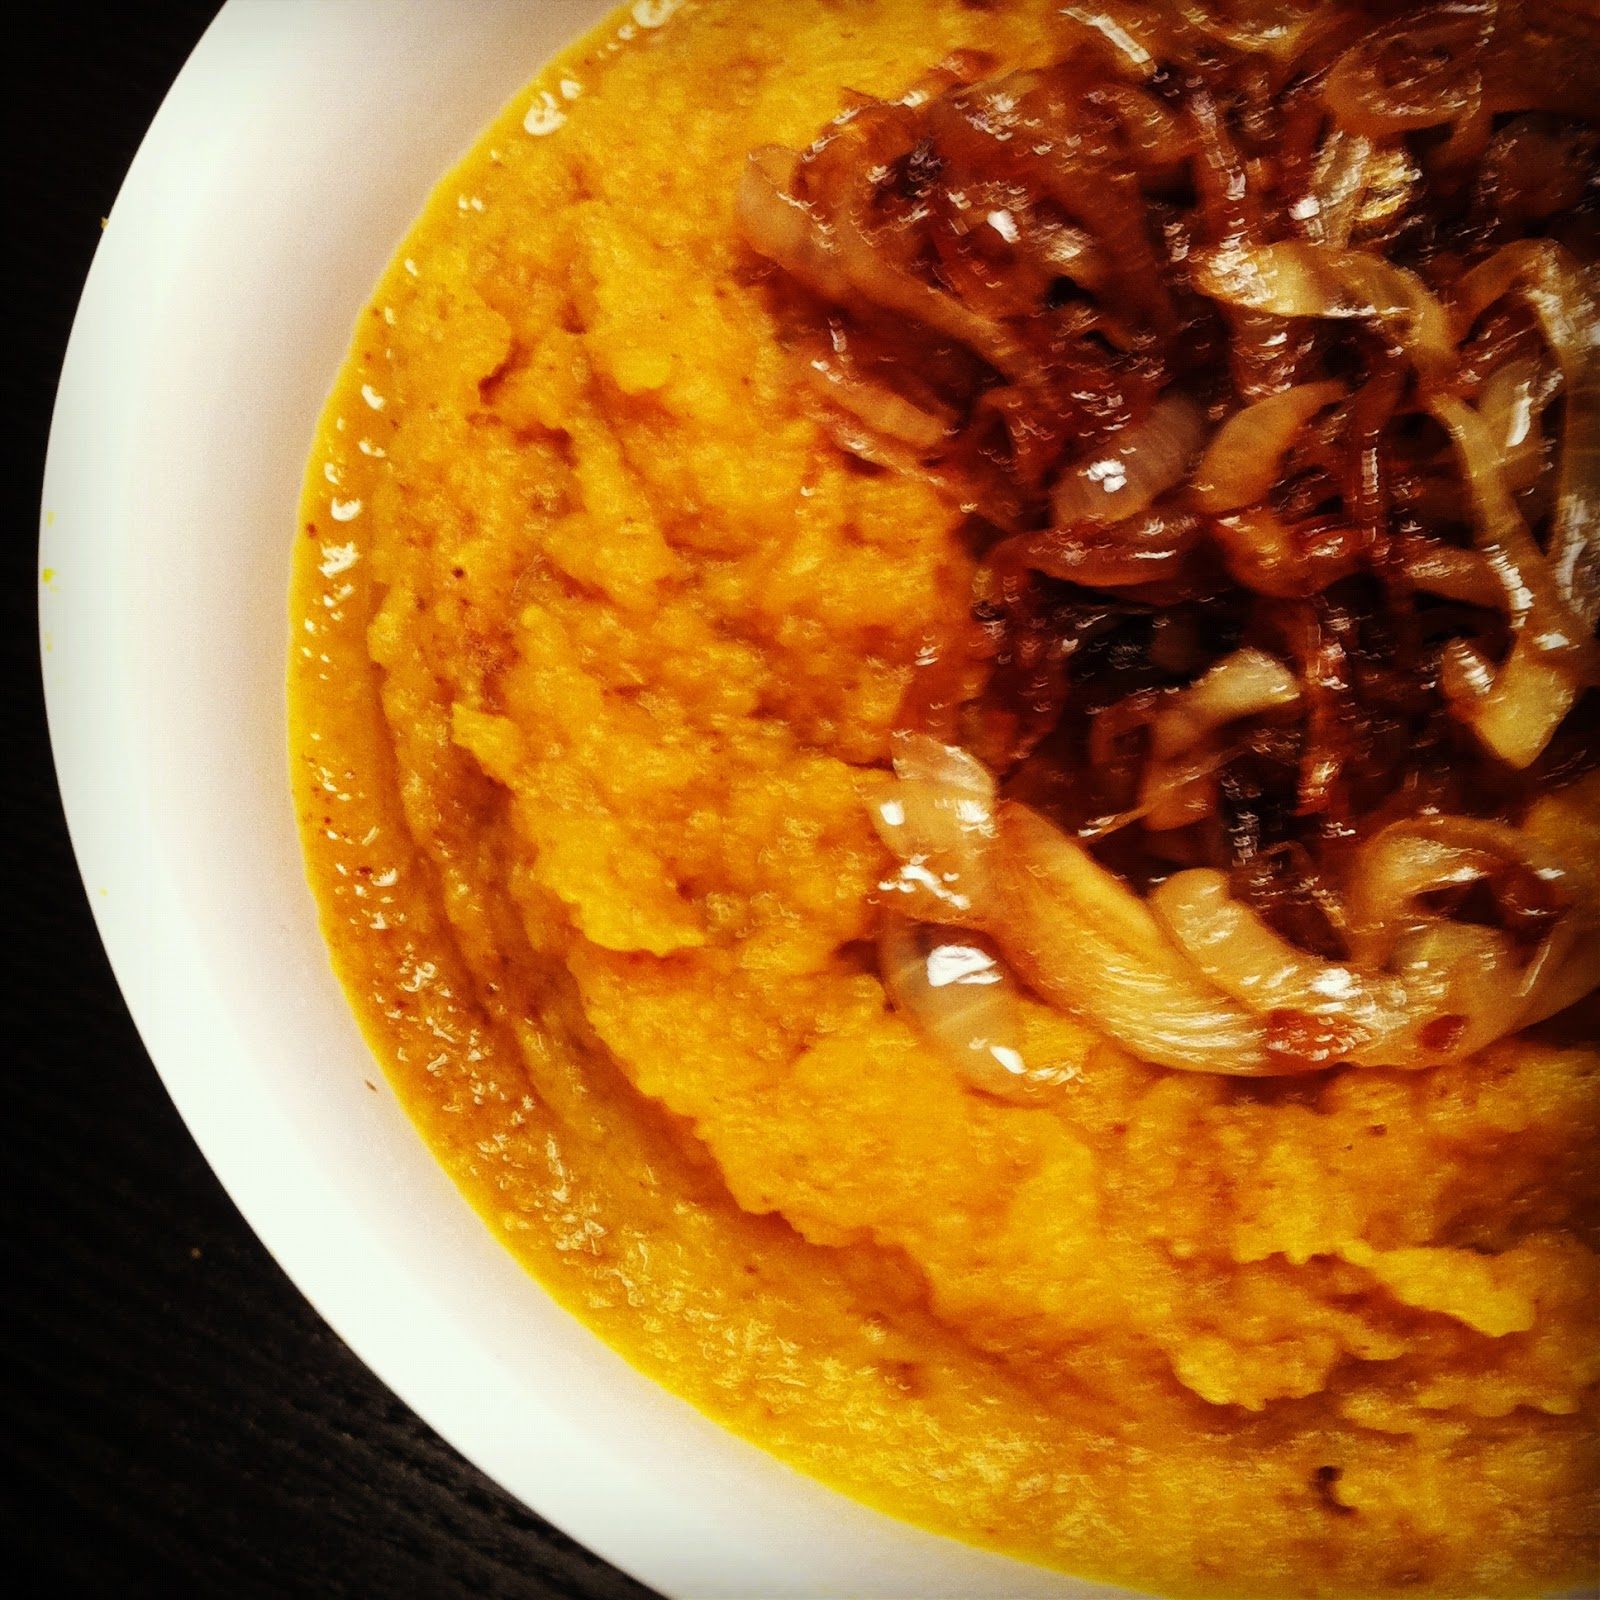 Farshicle: Sweet Potato and Pumpkin Mash with Caramelized Onions